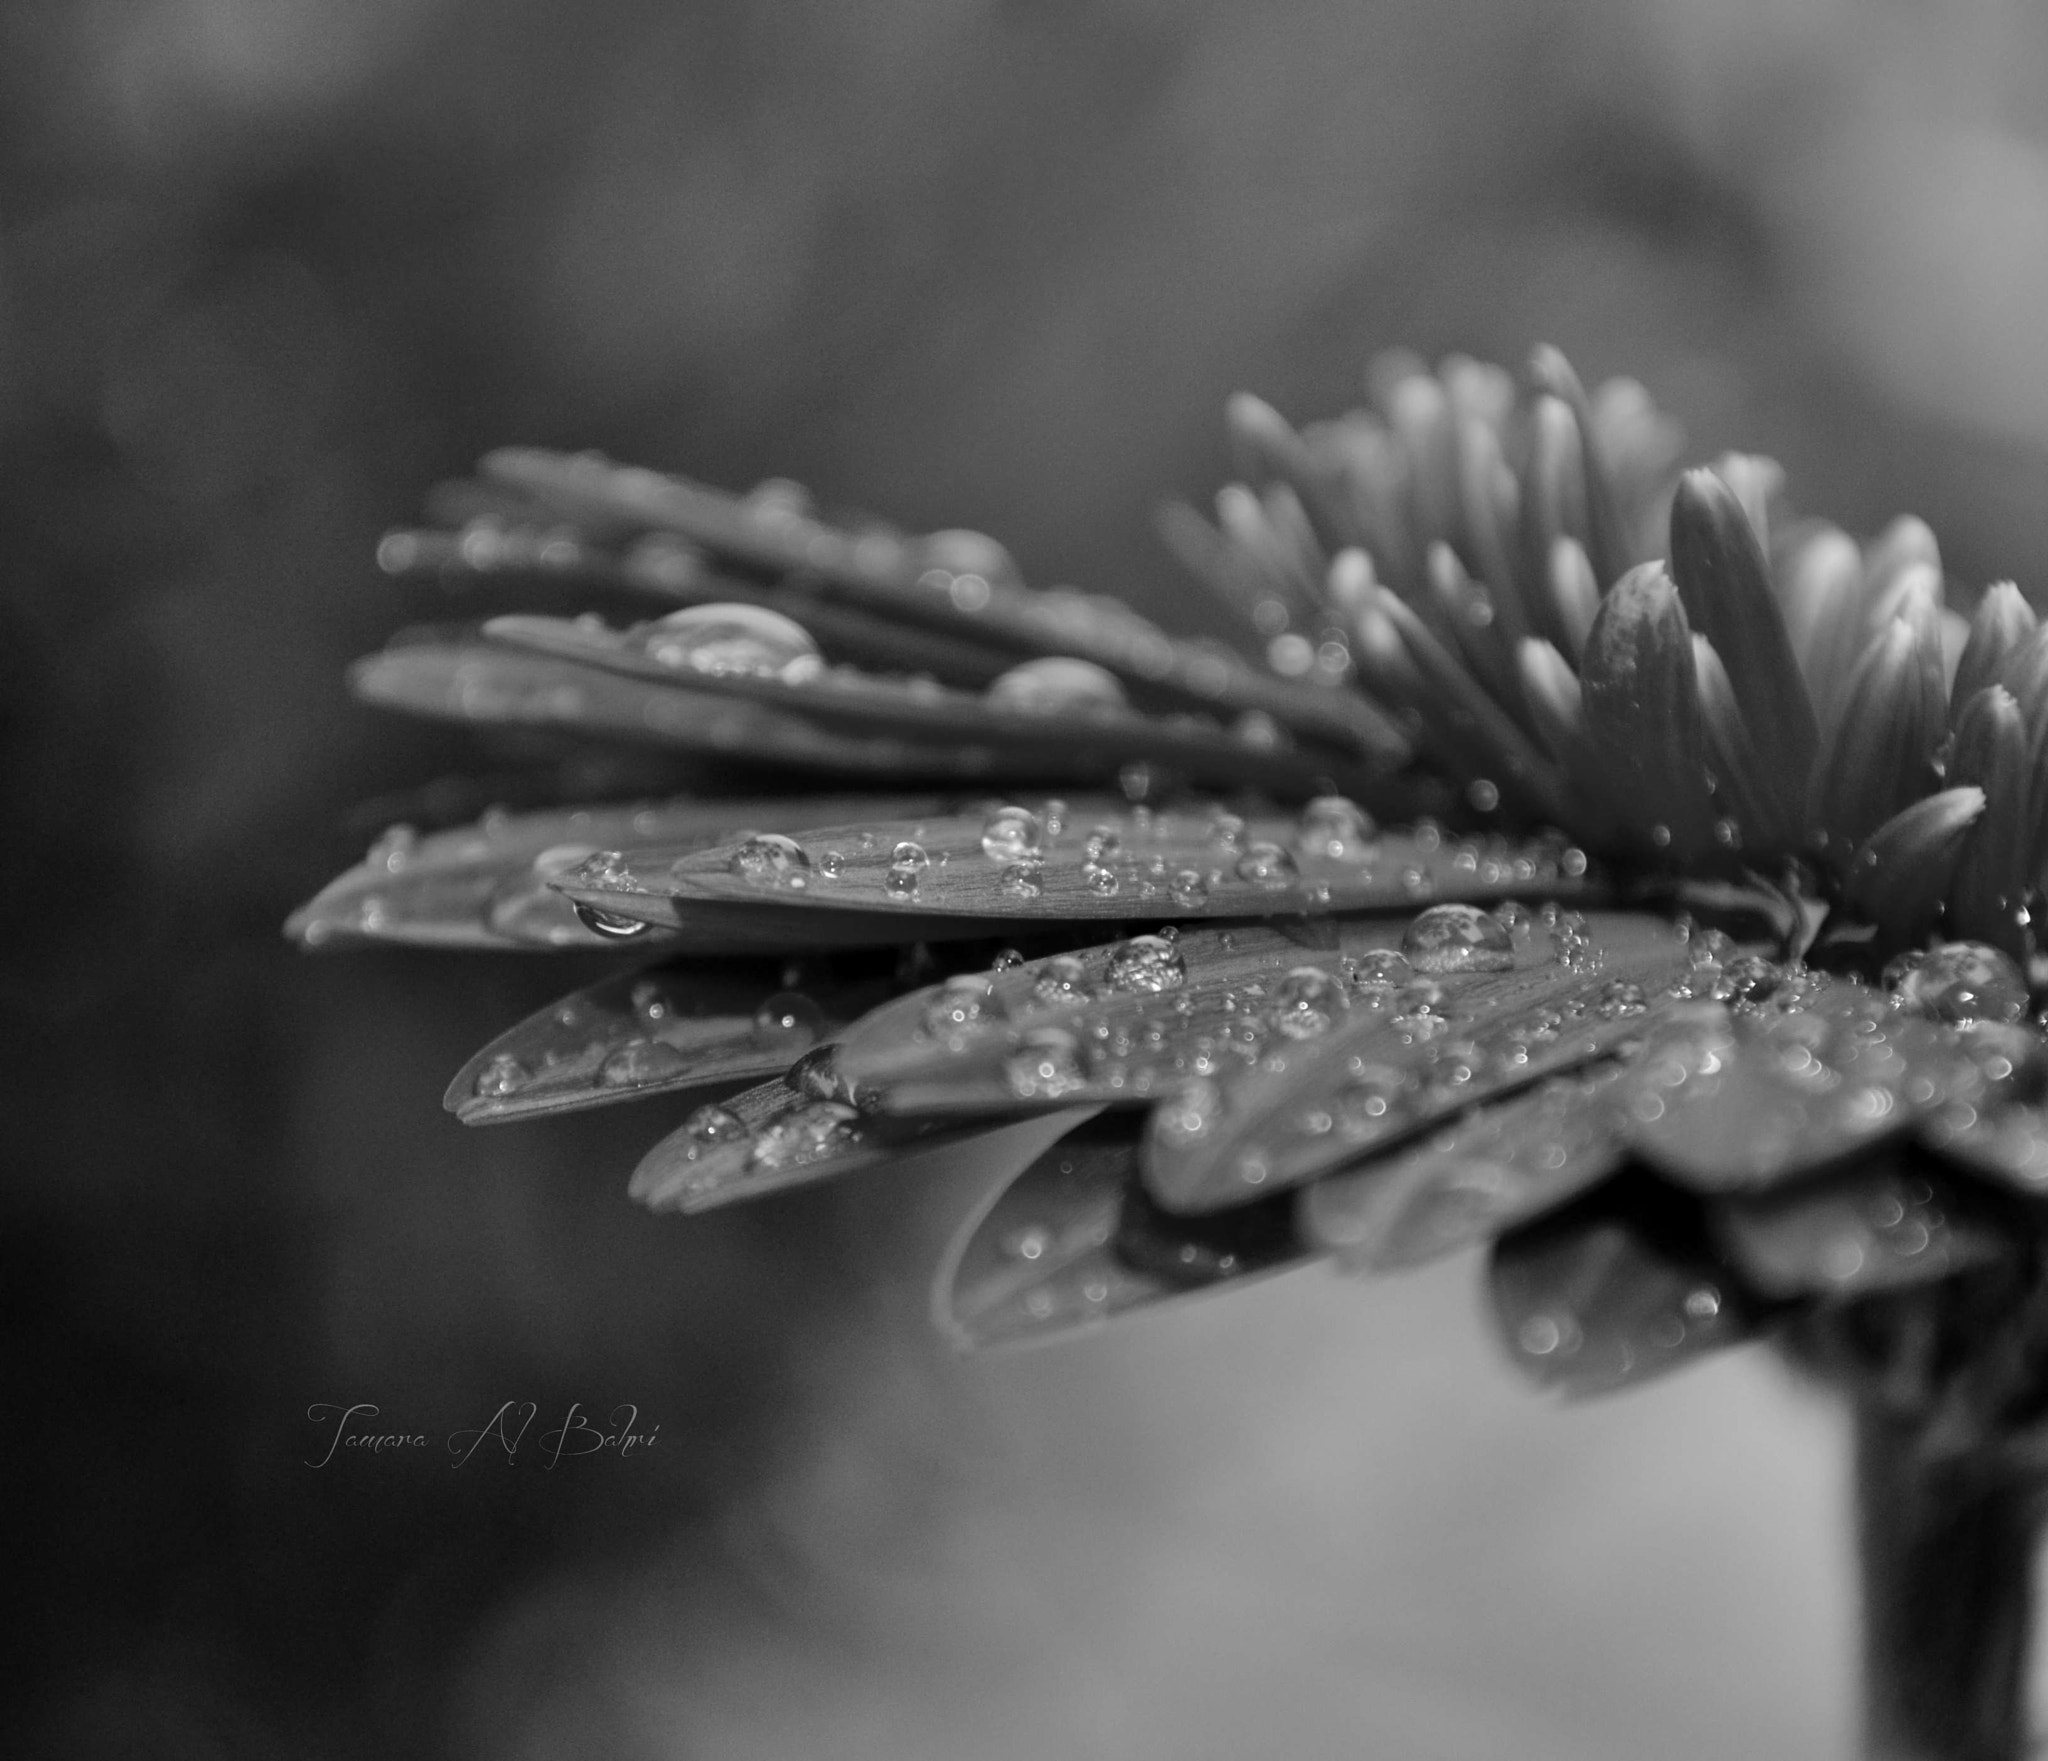 Photograph Rainy Day by Tamara Al Bahri on 500px